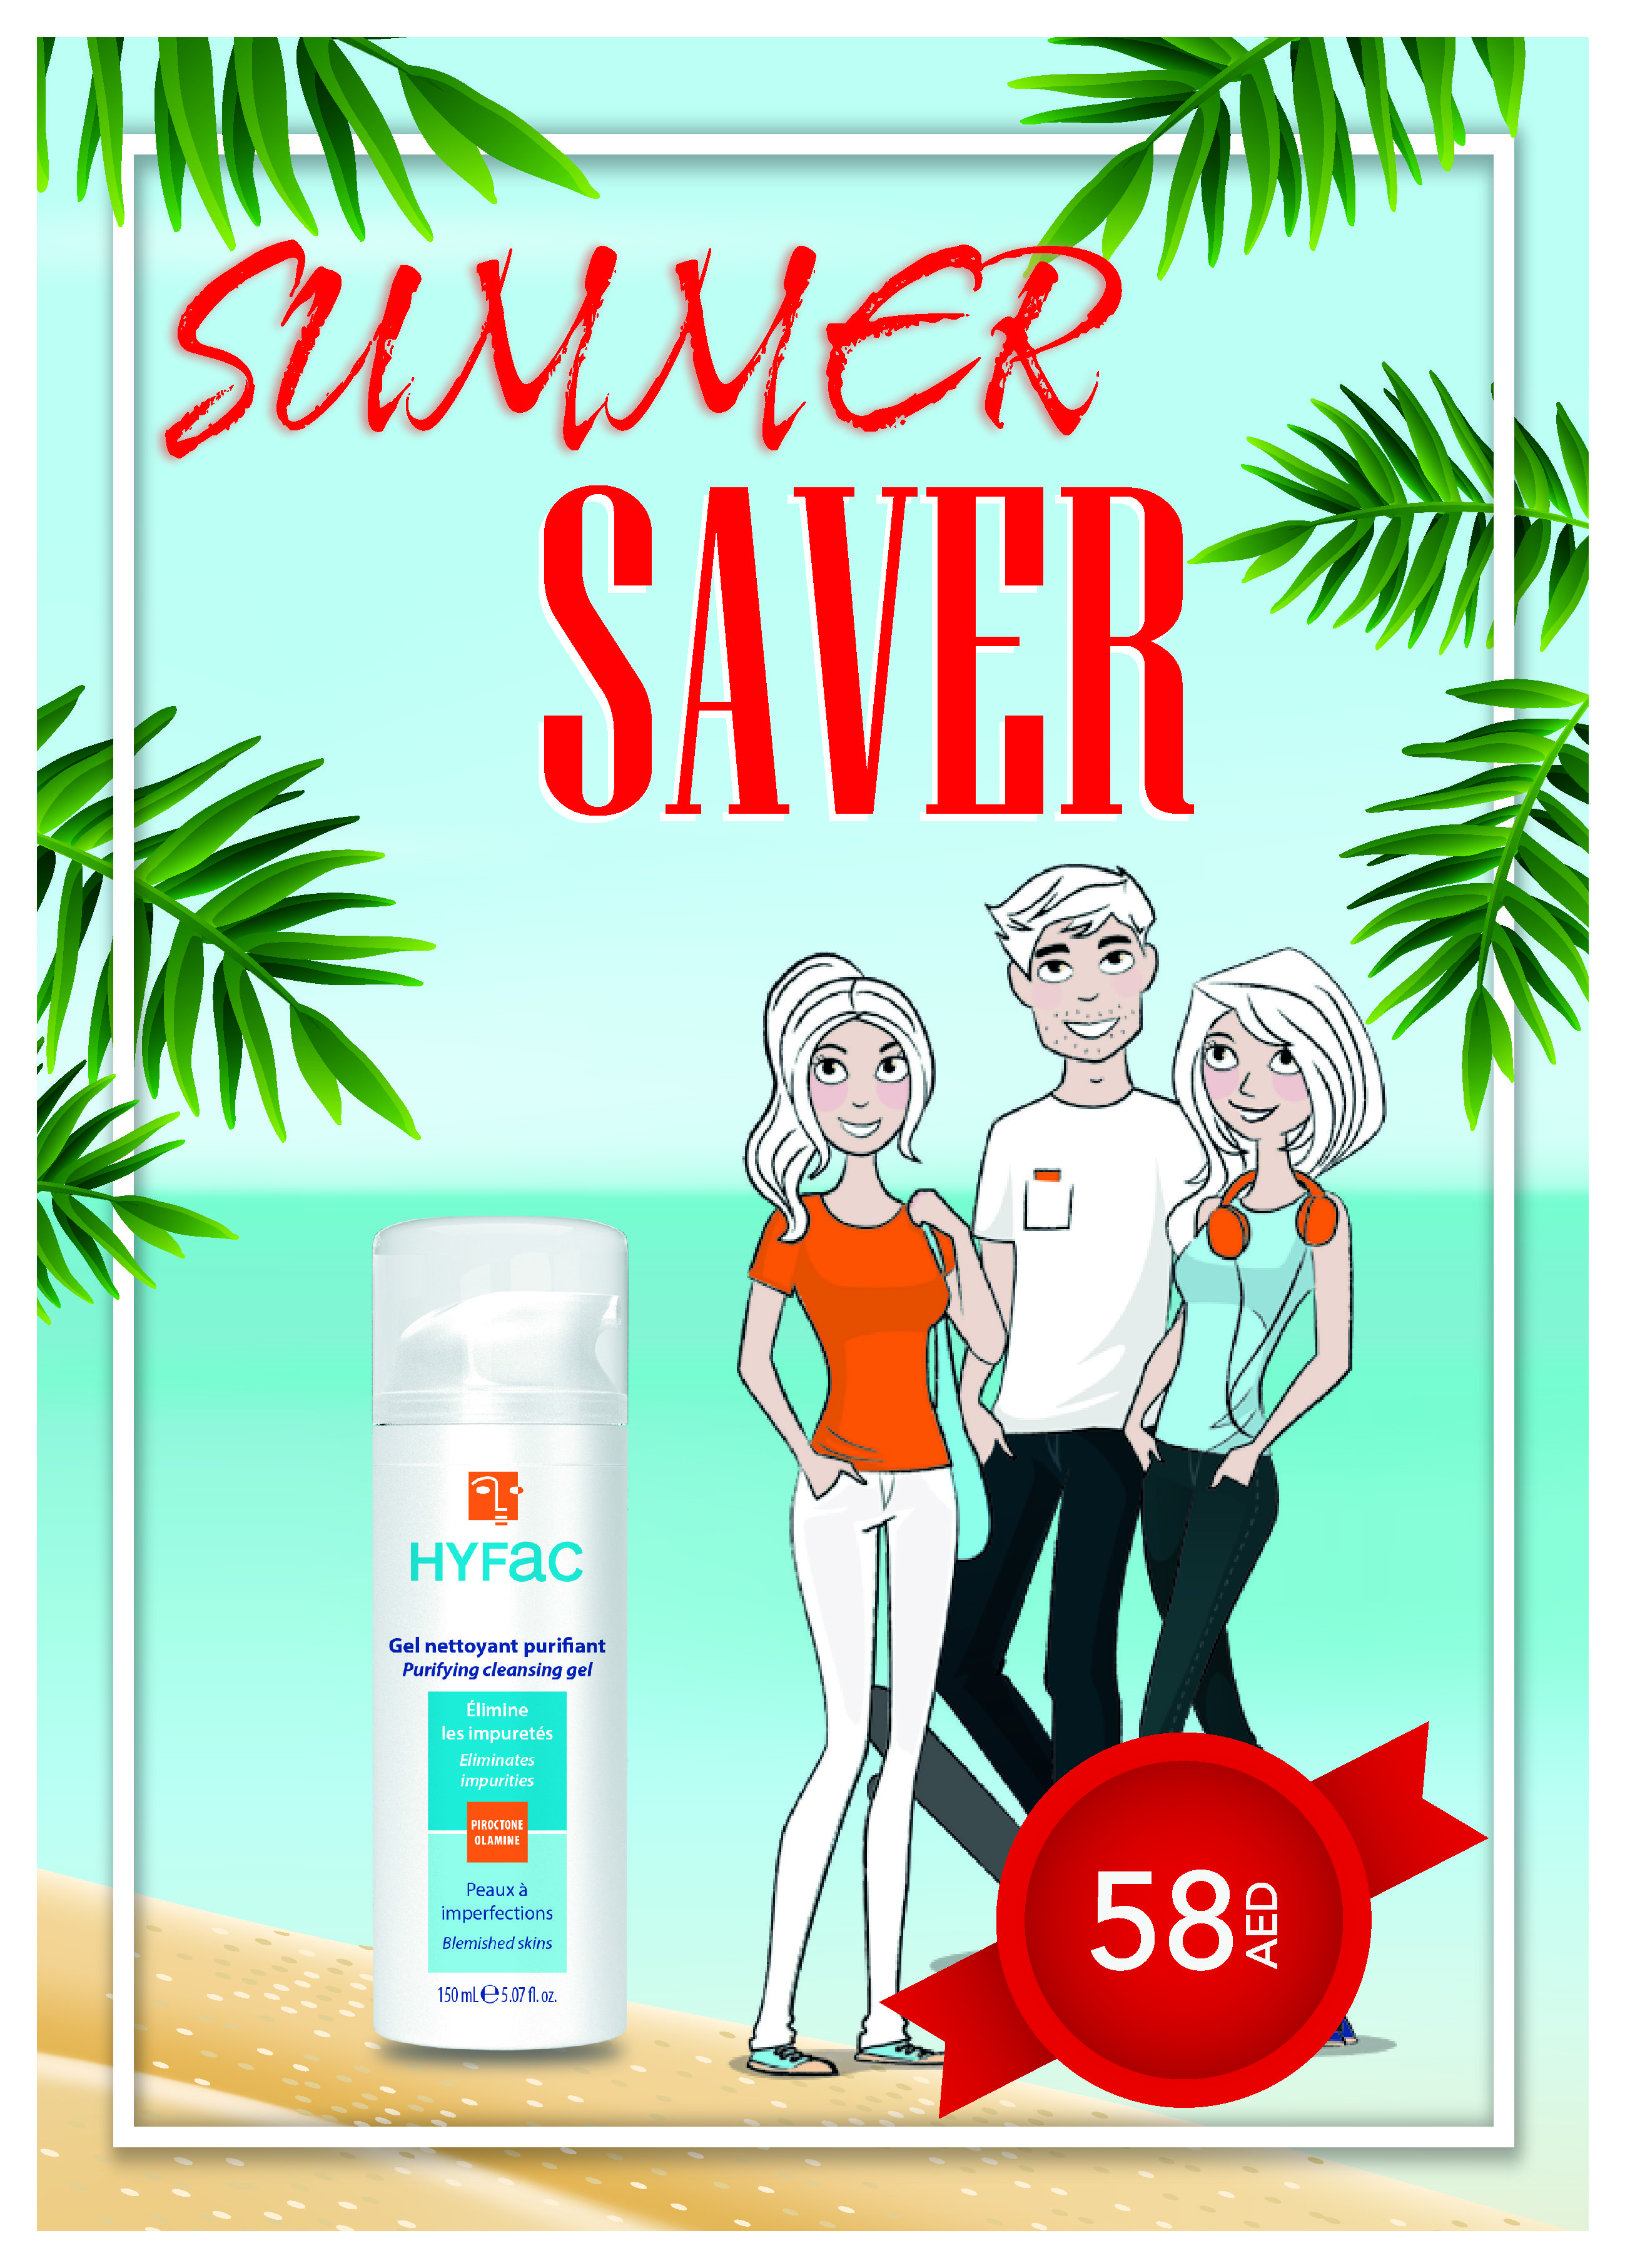 SUMMER SAVER OFFERS ☀ Hurry Up! Offer Ends on July 22nd